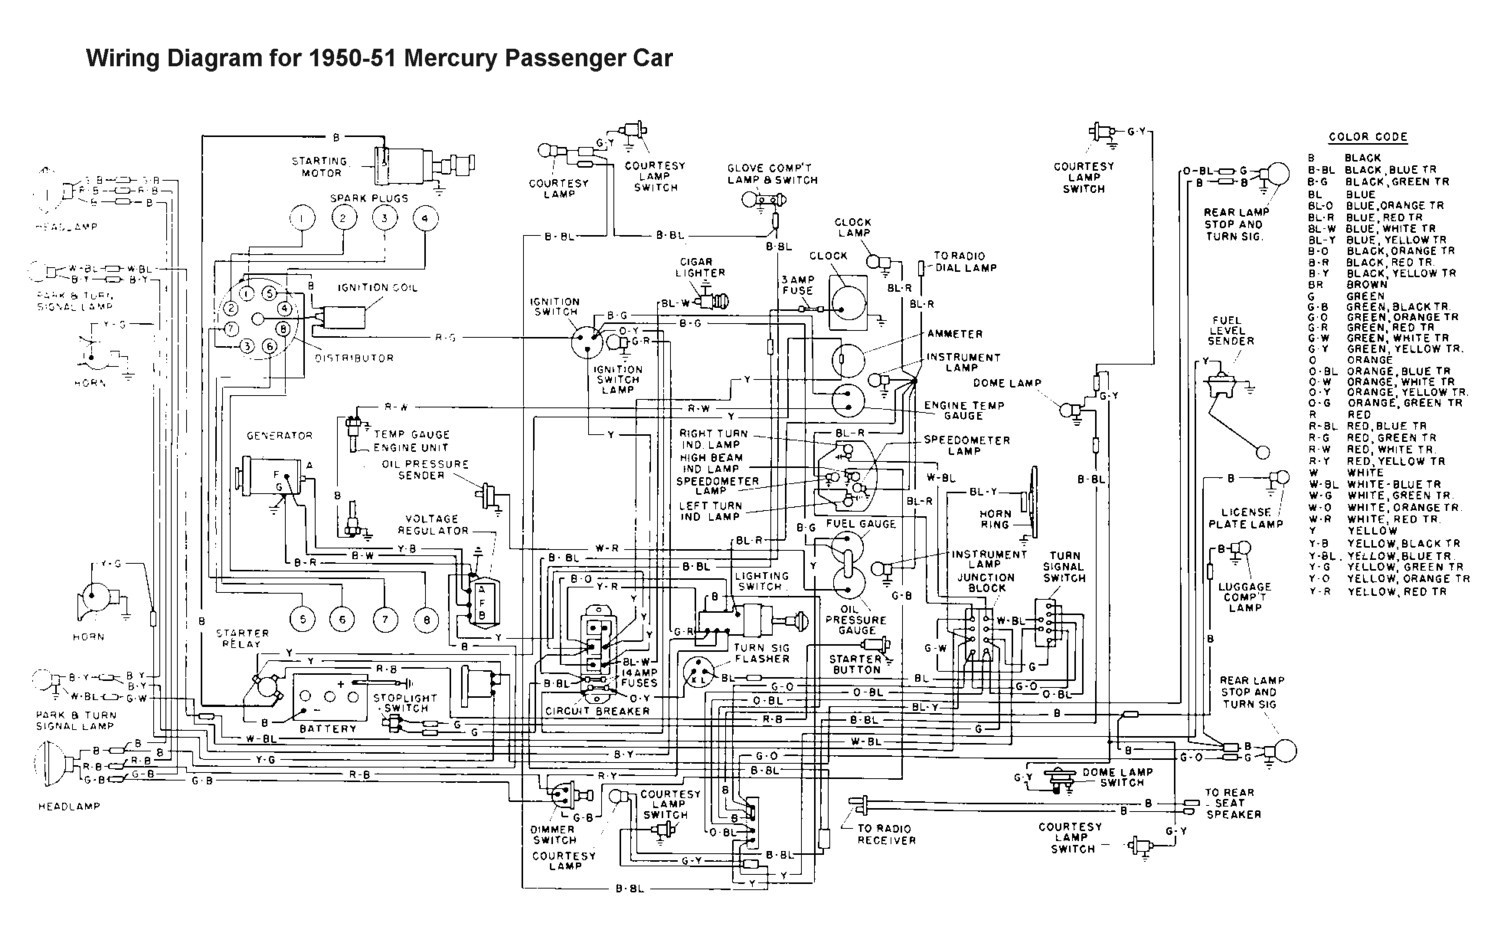 Fiat Coupe Wiring Diagram Library Peugeot Jetforce 125 For 1950 51 Mercury Car